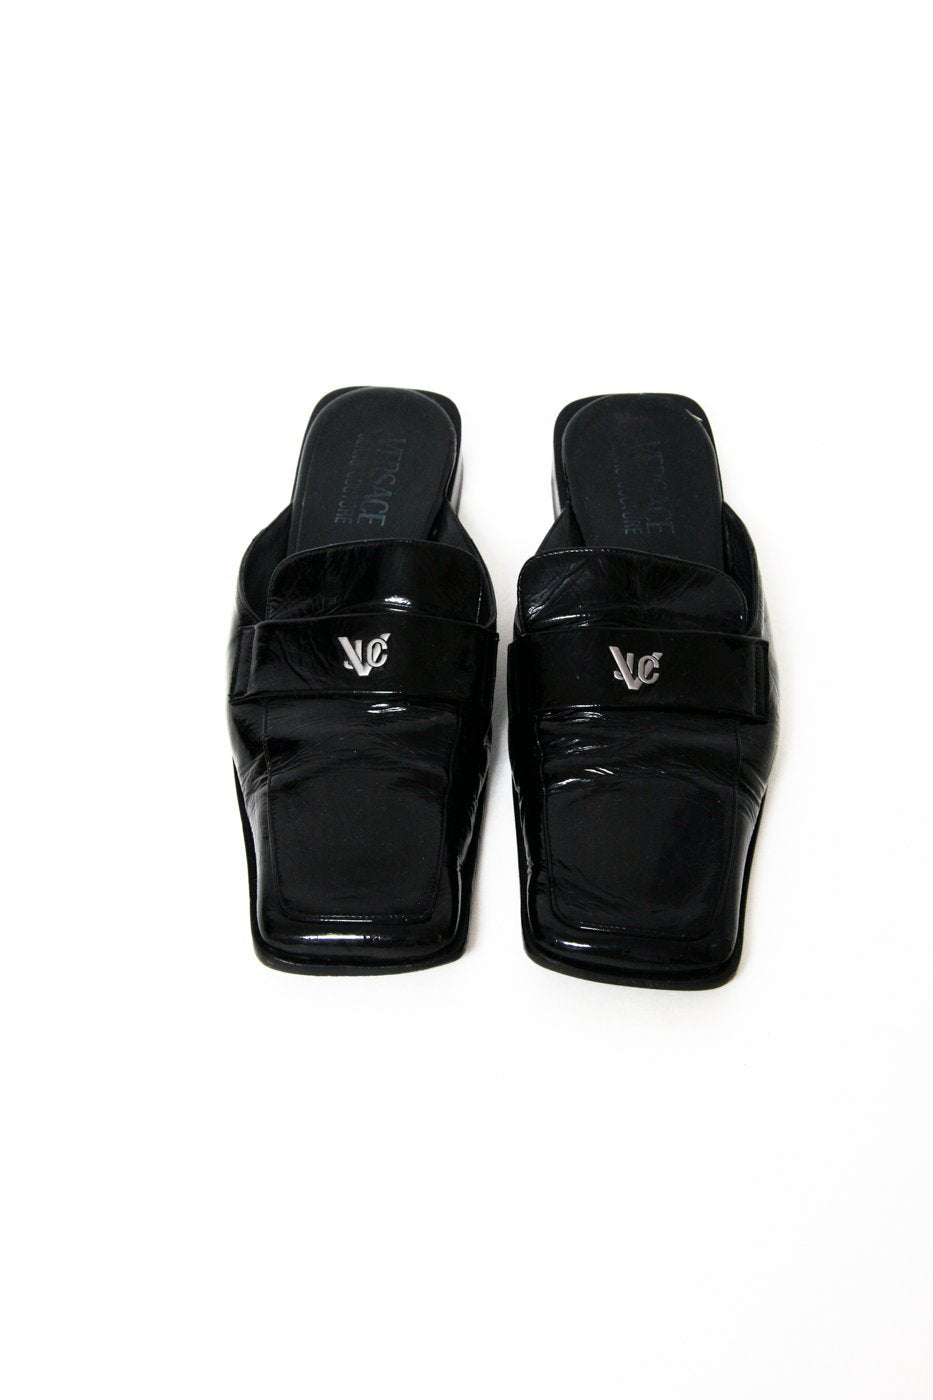 0468_VERSACE VINTAGE LEATHER SLIPPER 40